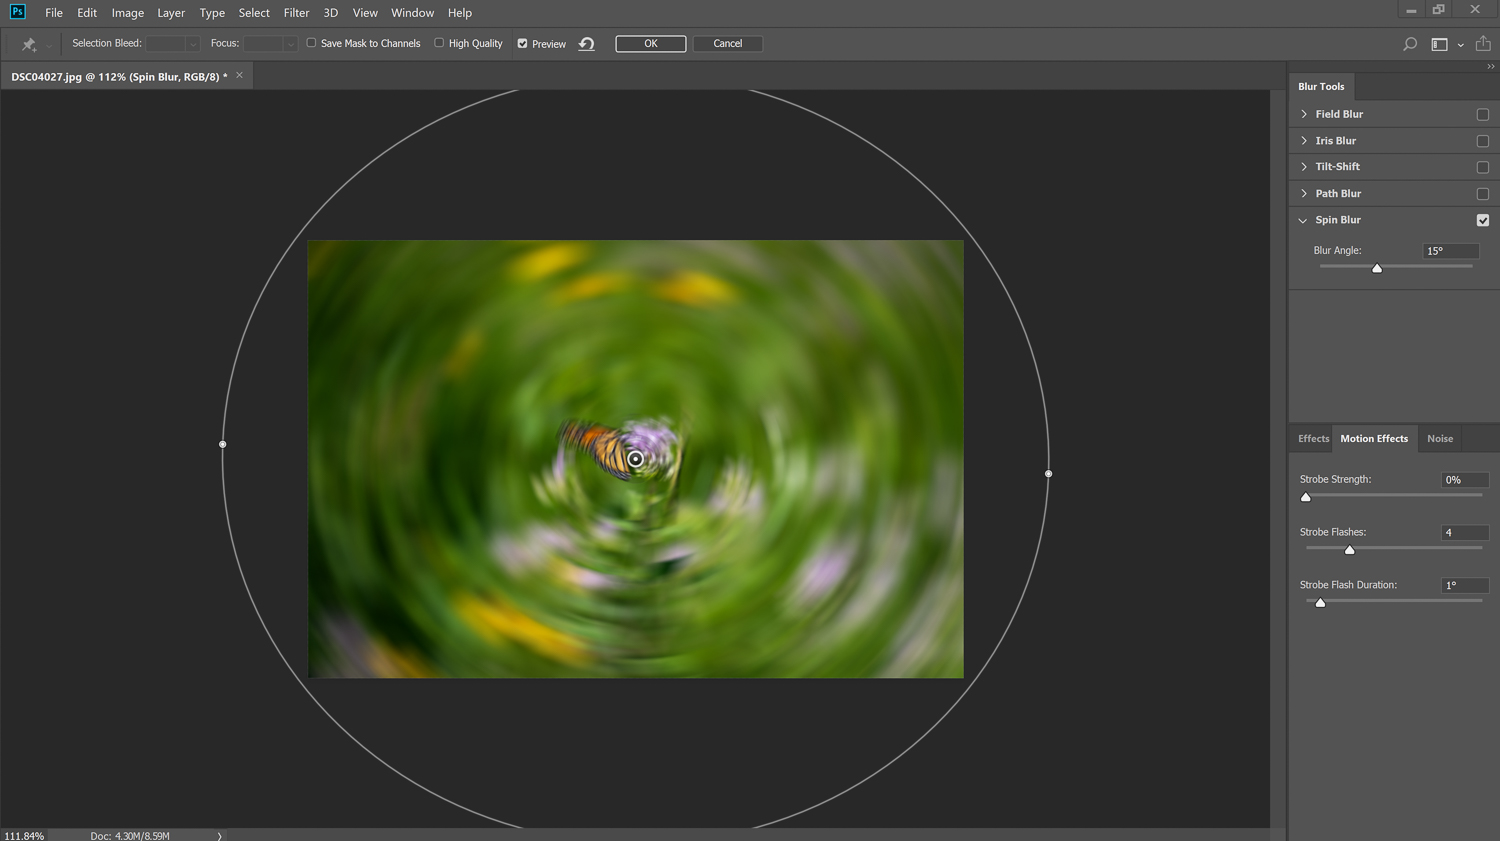 spin blur filter in action - How to Simulate a Swirly Bokeh in Photoshop